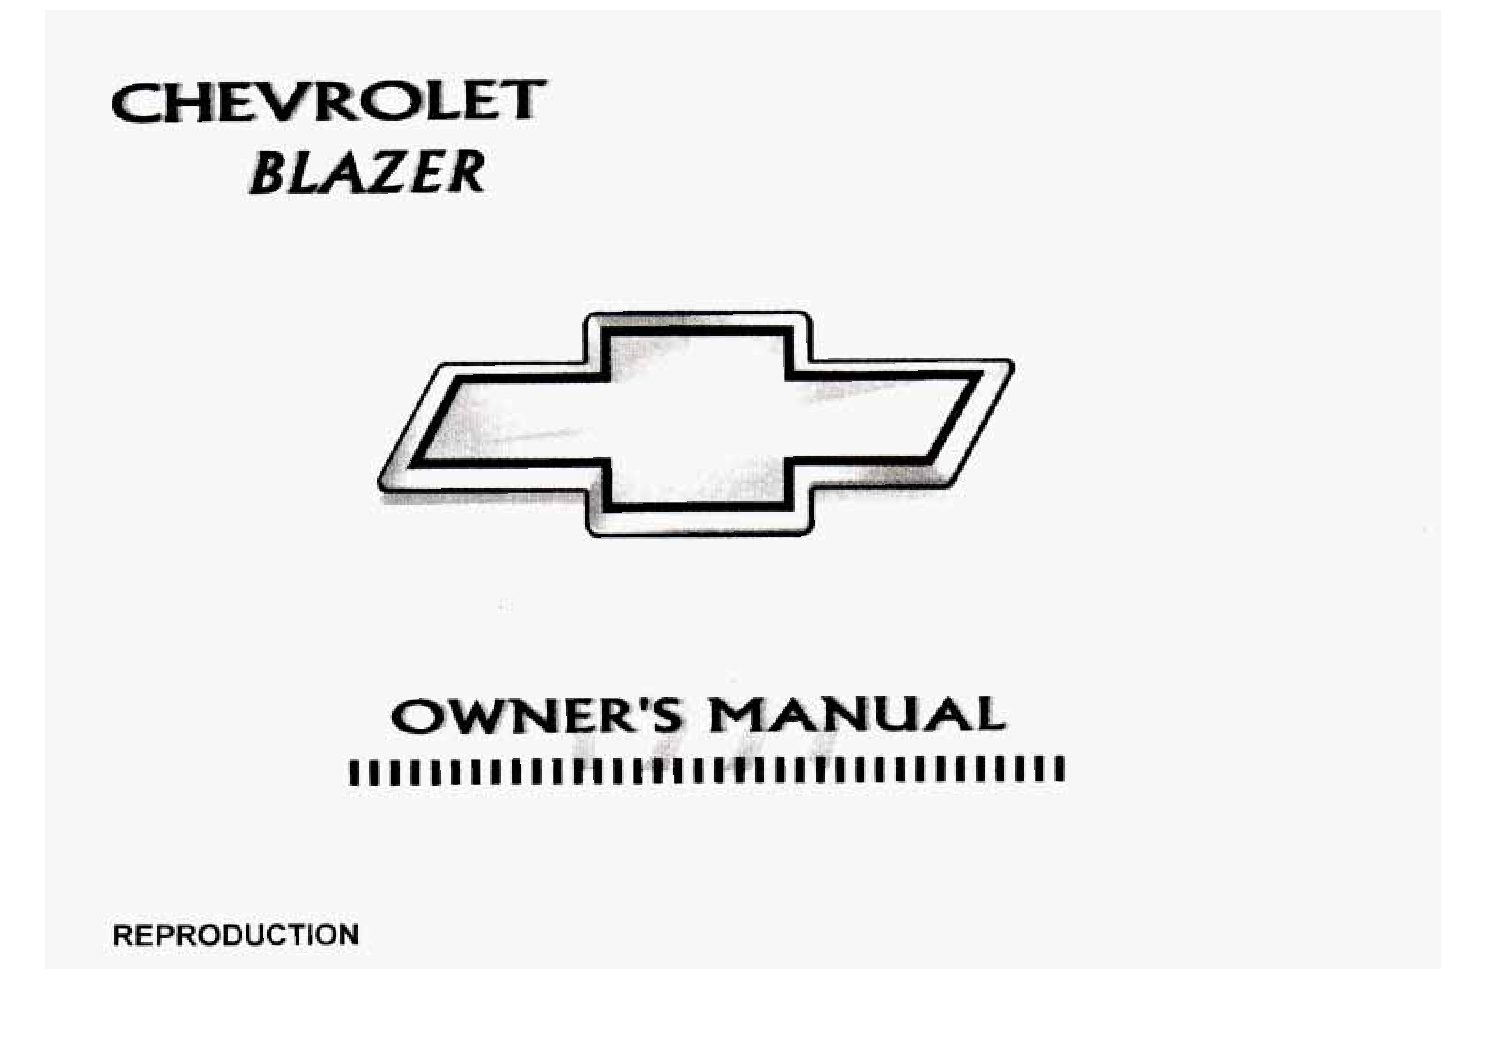 1997 chevrolet blazer owners manual just give me the damn manual rh justgivemethedamnmanual com 1997 chevy blazer owners manual 1997 chevy blazer service manual pdf